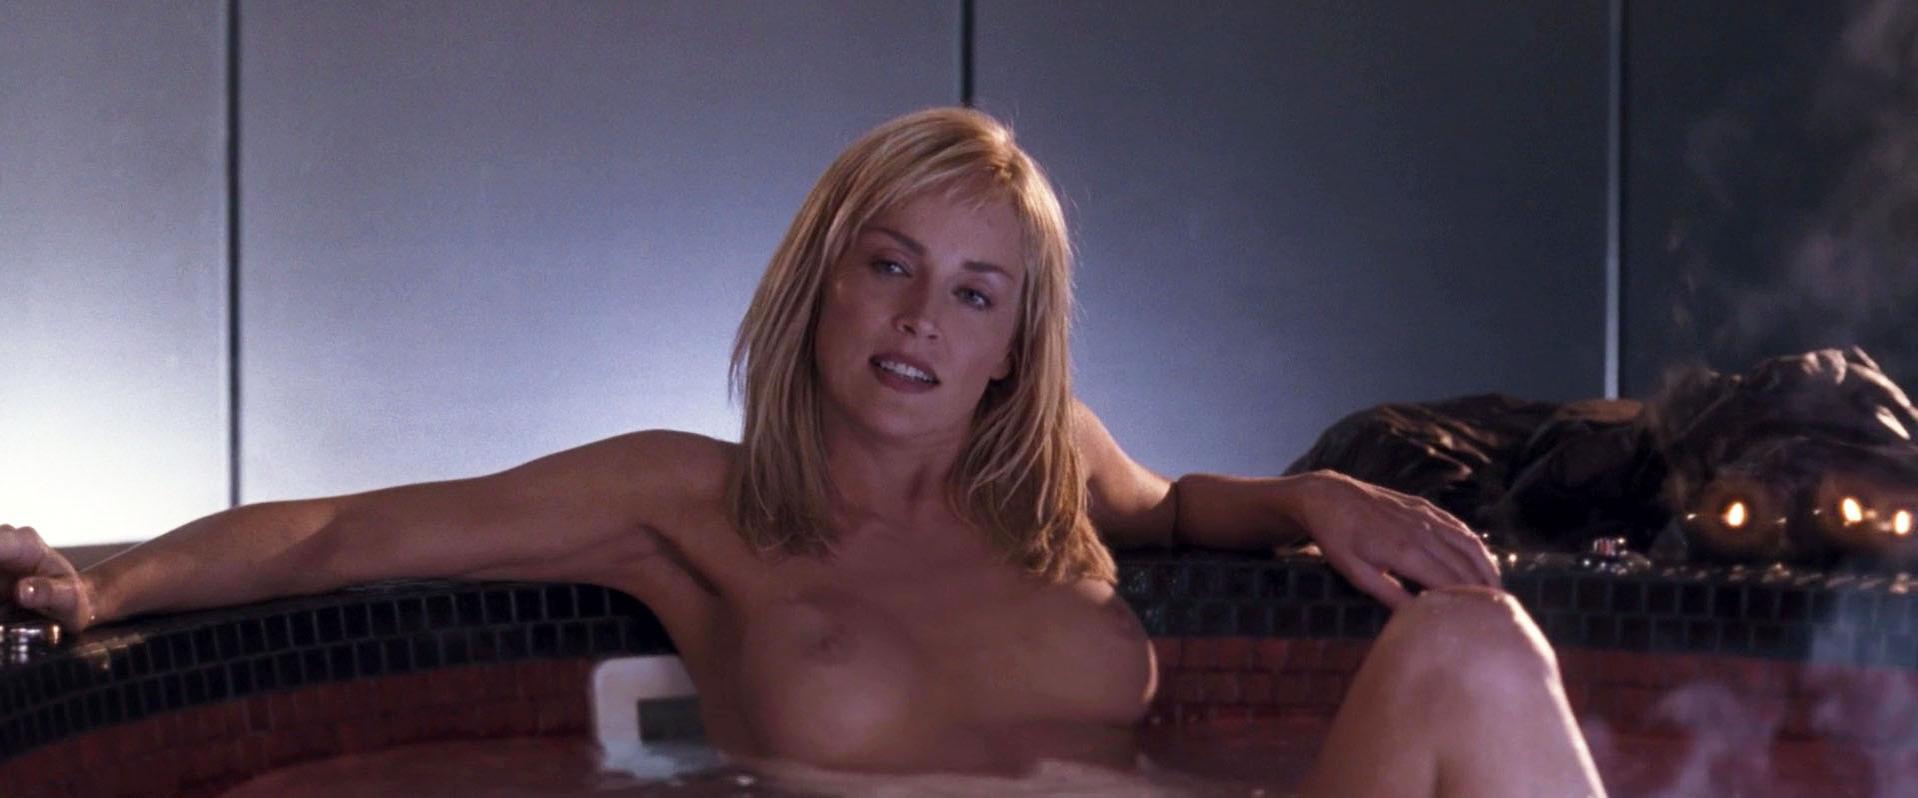 Sharon Stone nude - Basic Instinct 2 (2006)